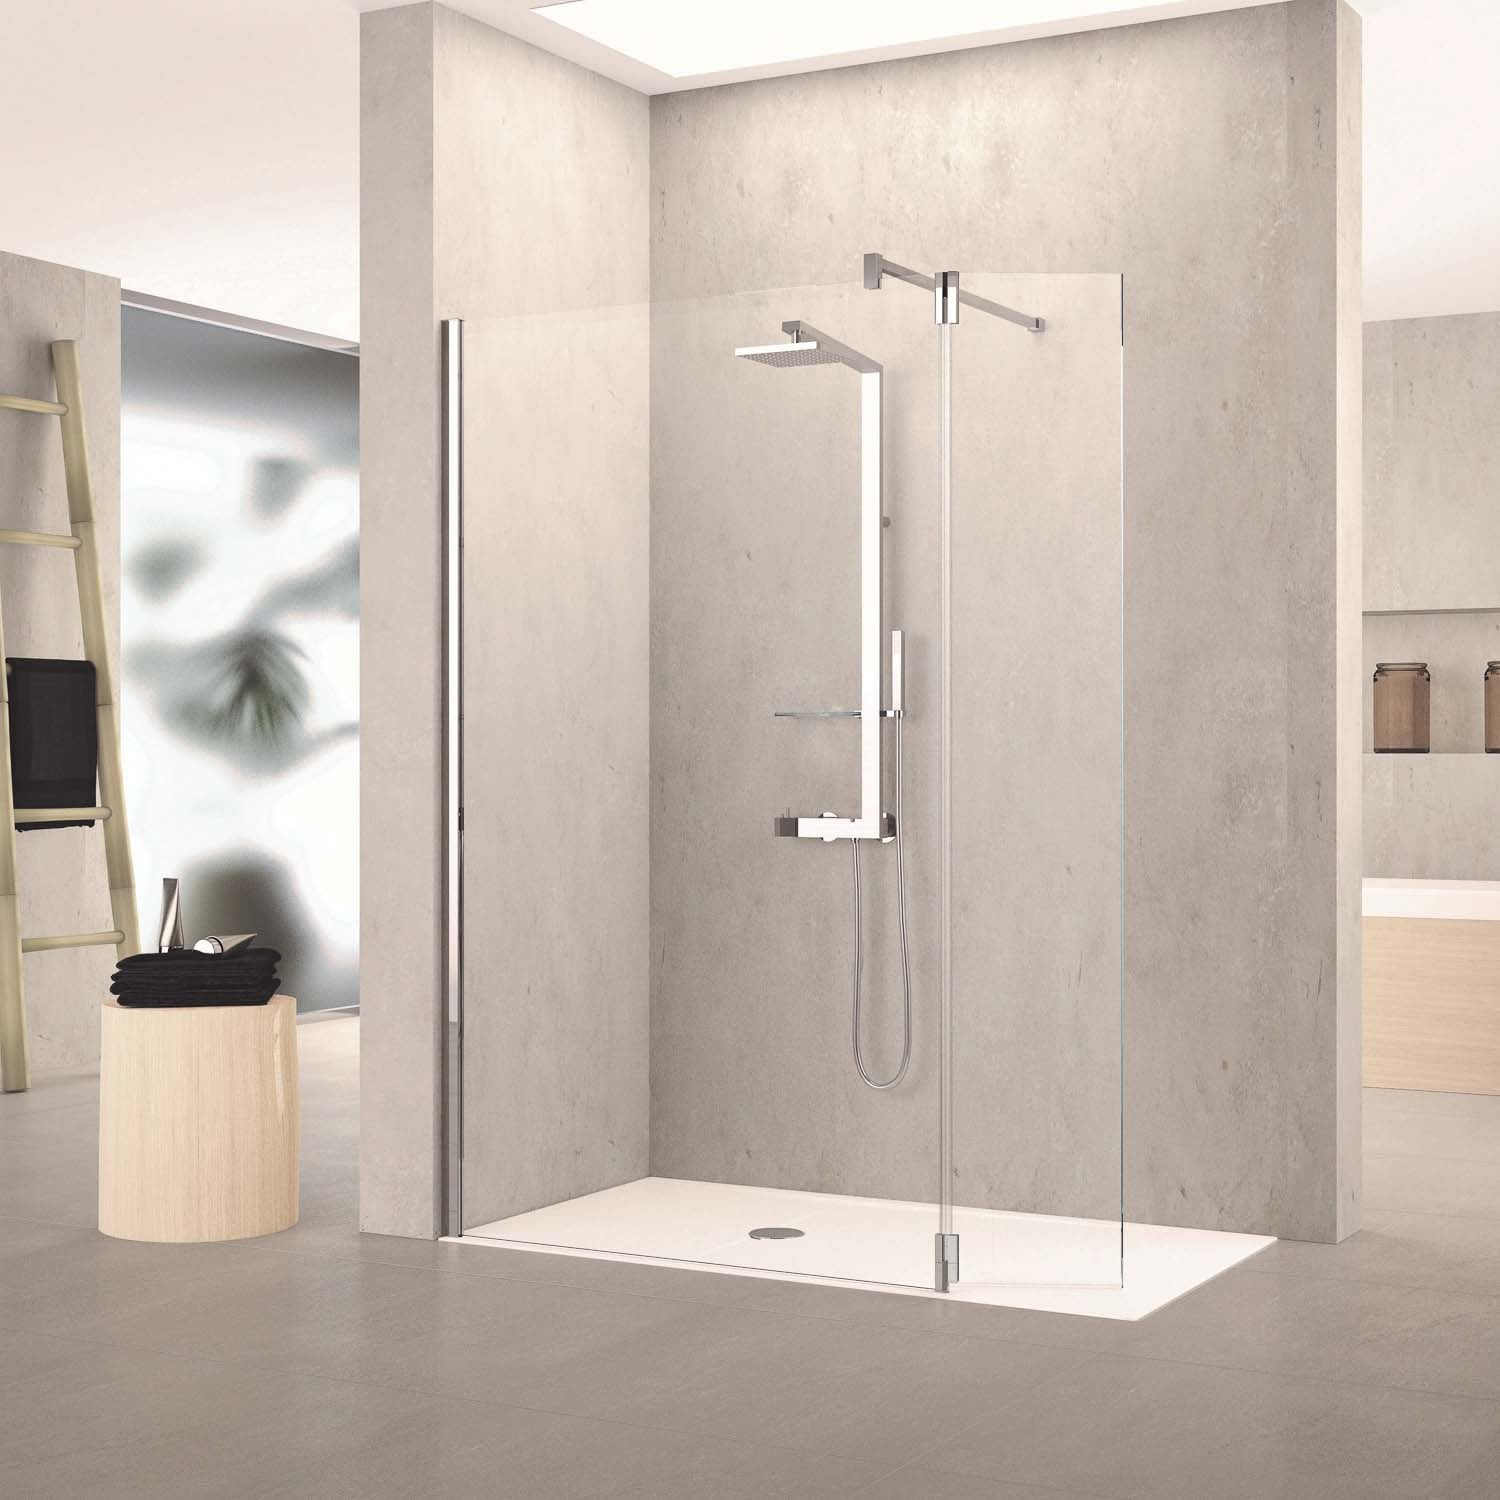 670-700mm Ergo Wet Room Screen Clear Glass with a chrome finish lifestyle image